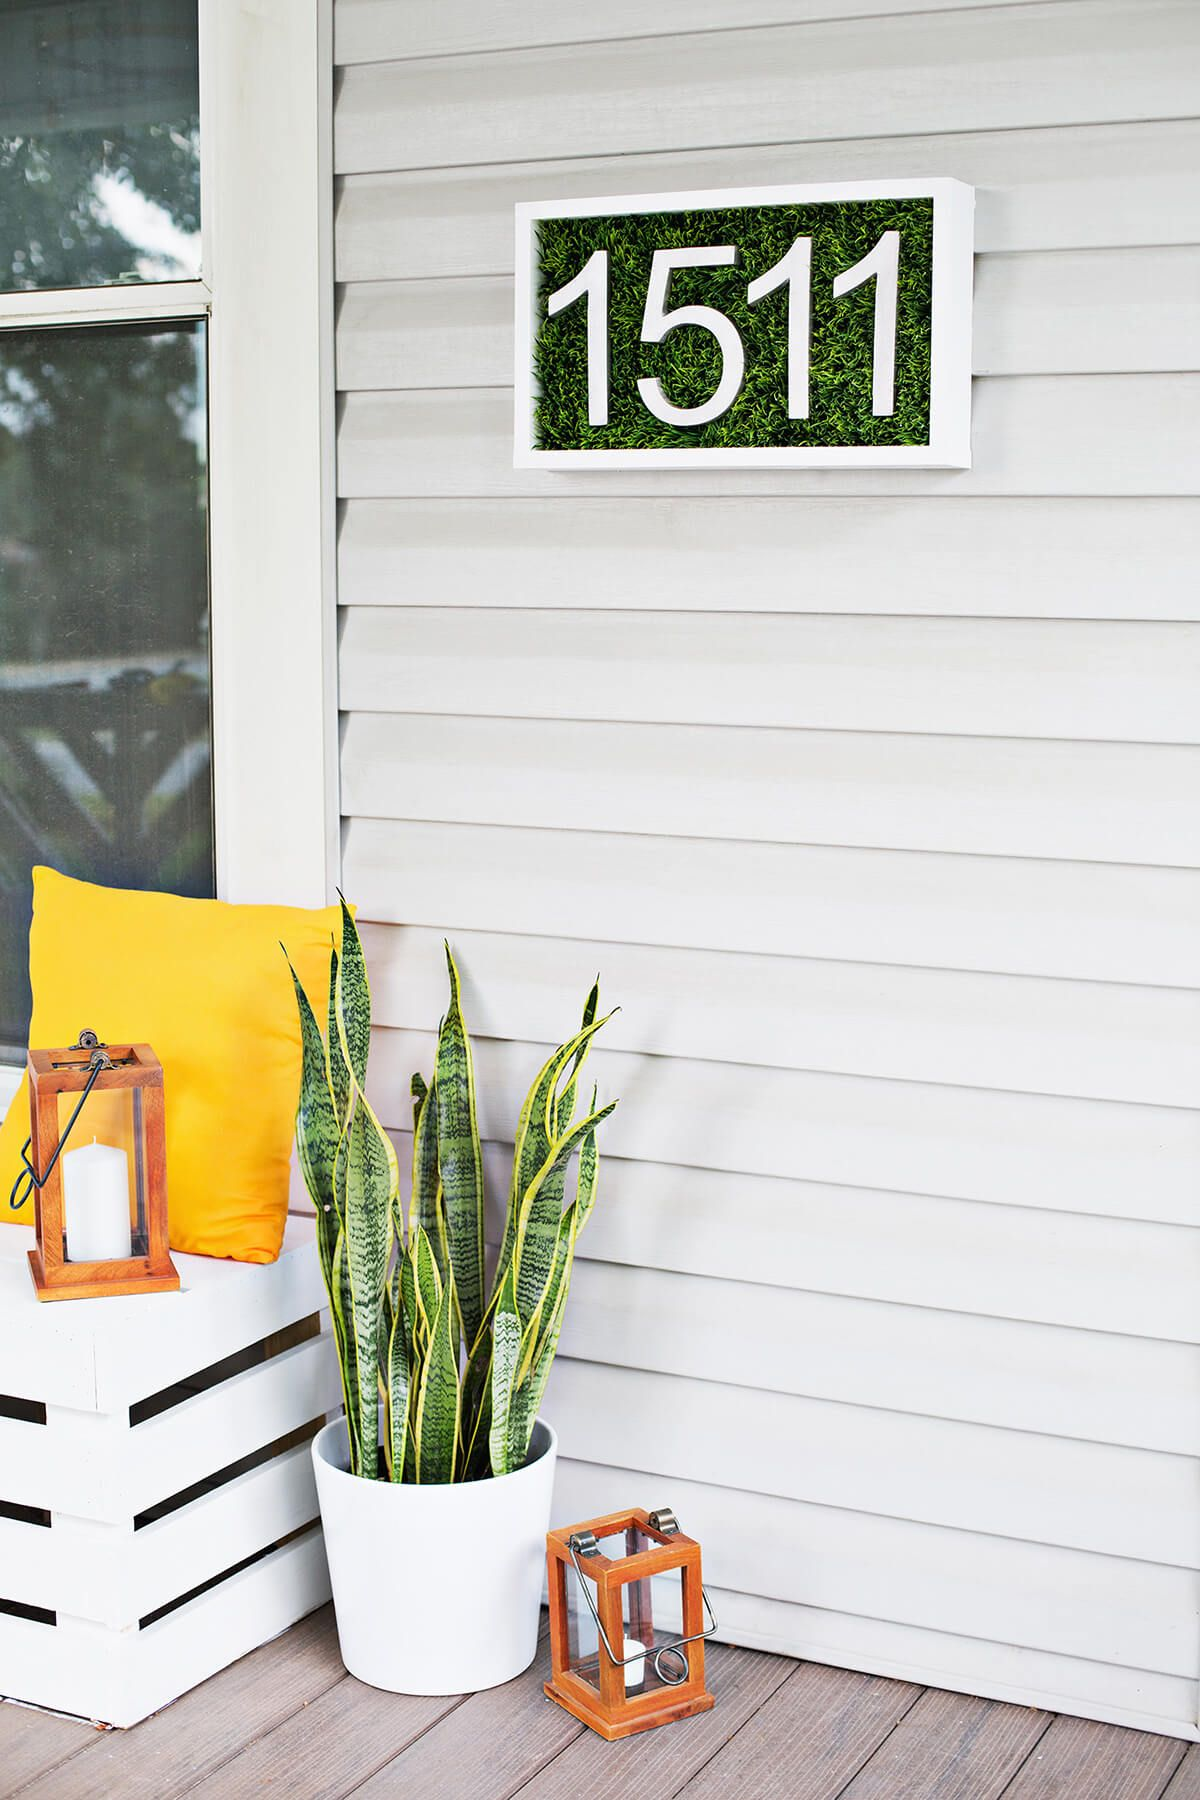 33 Unique House Number Ideas that are Easy to Create | Home ...